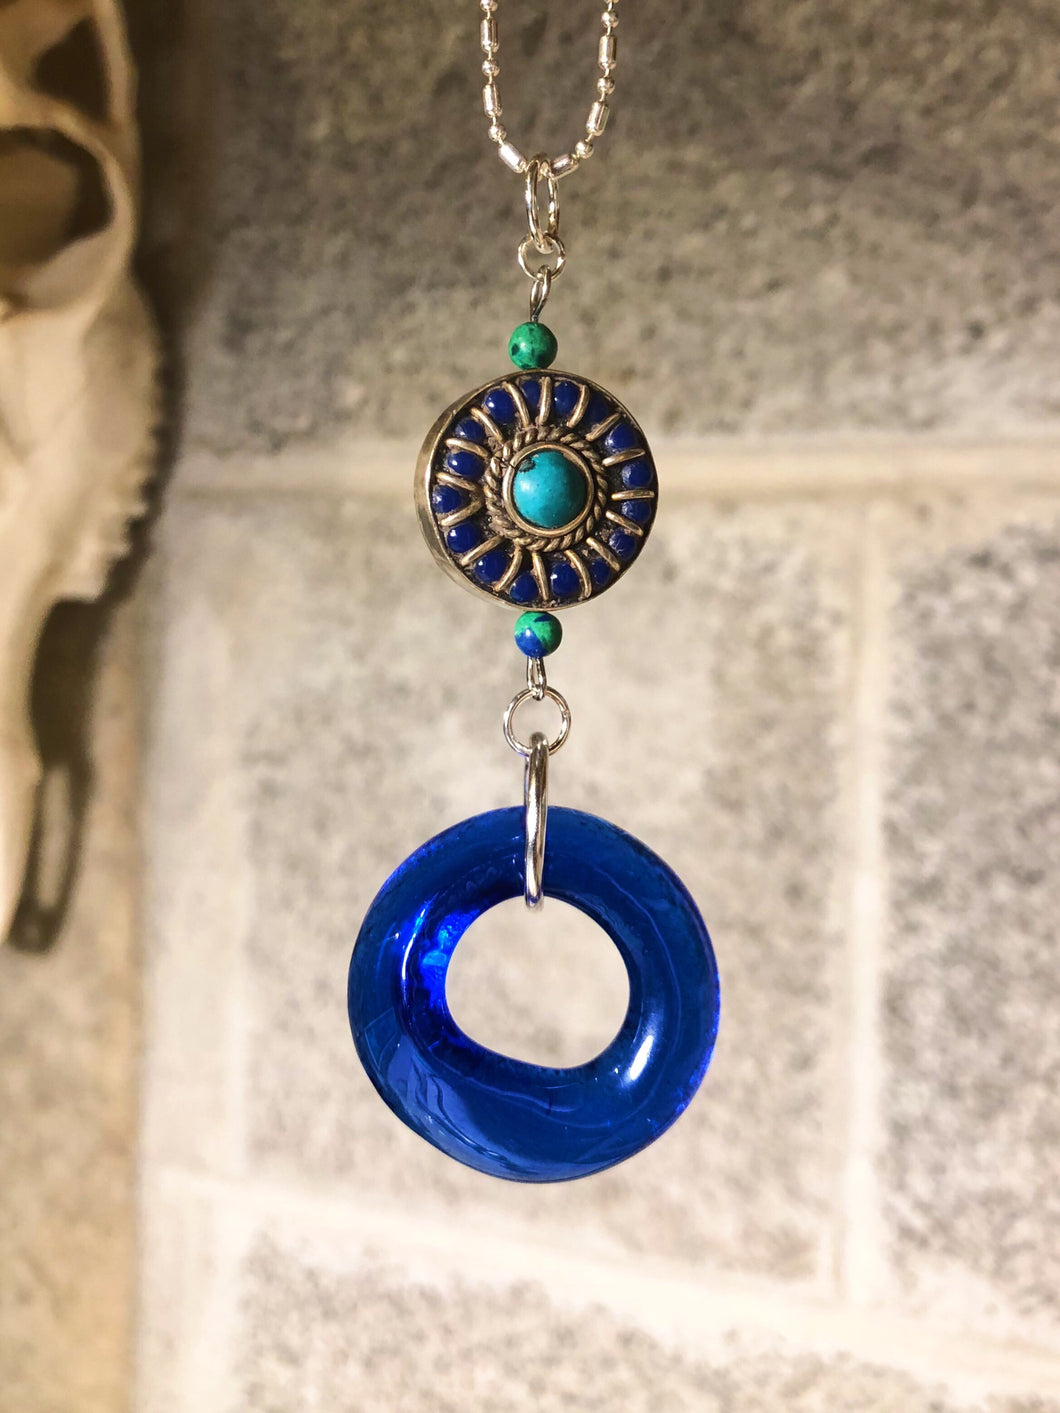 Upcycled Cobalt Blue Wine Bottle Pendant with Tibetan Bead